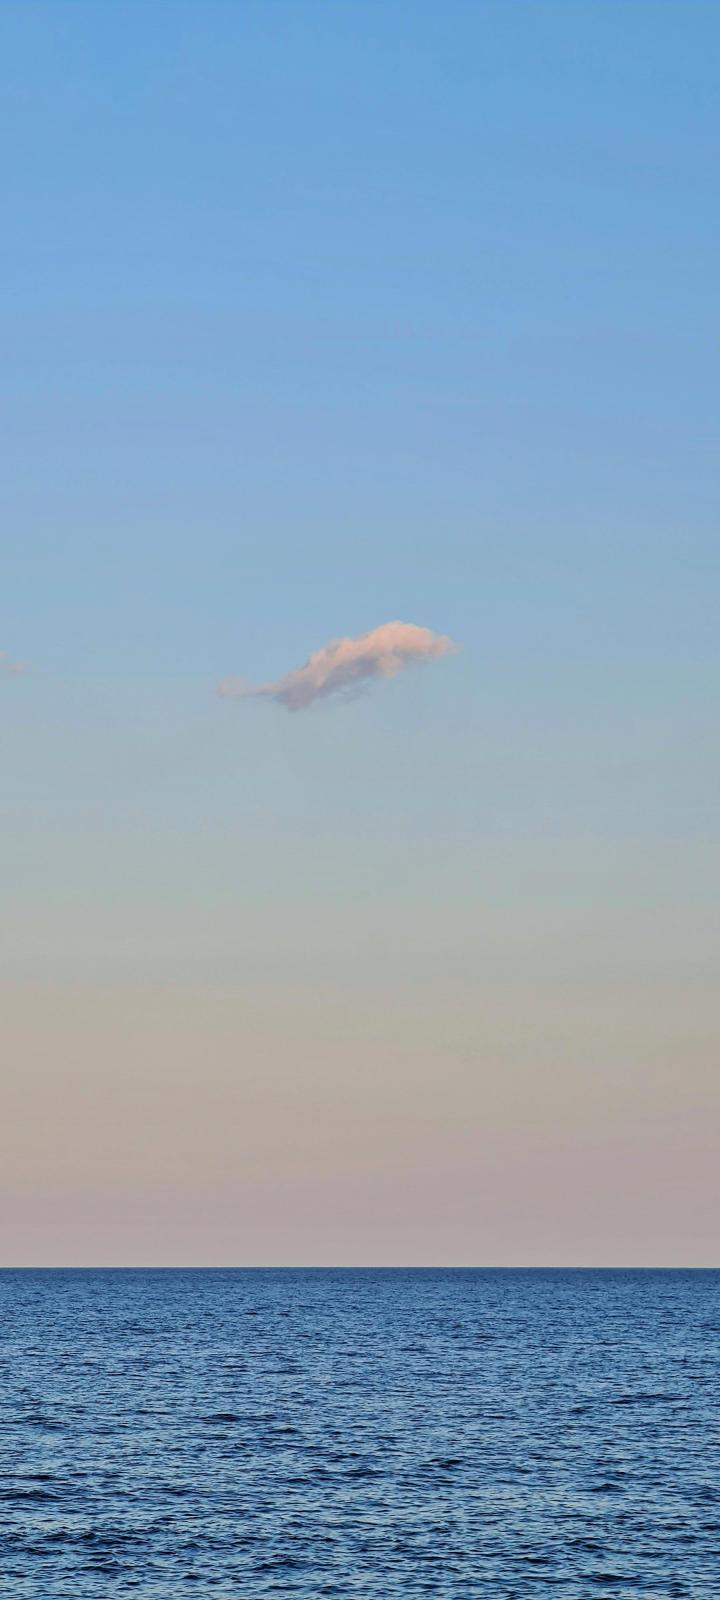 Lonely cloud by me